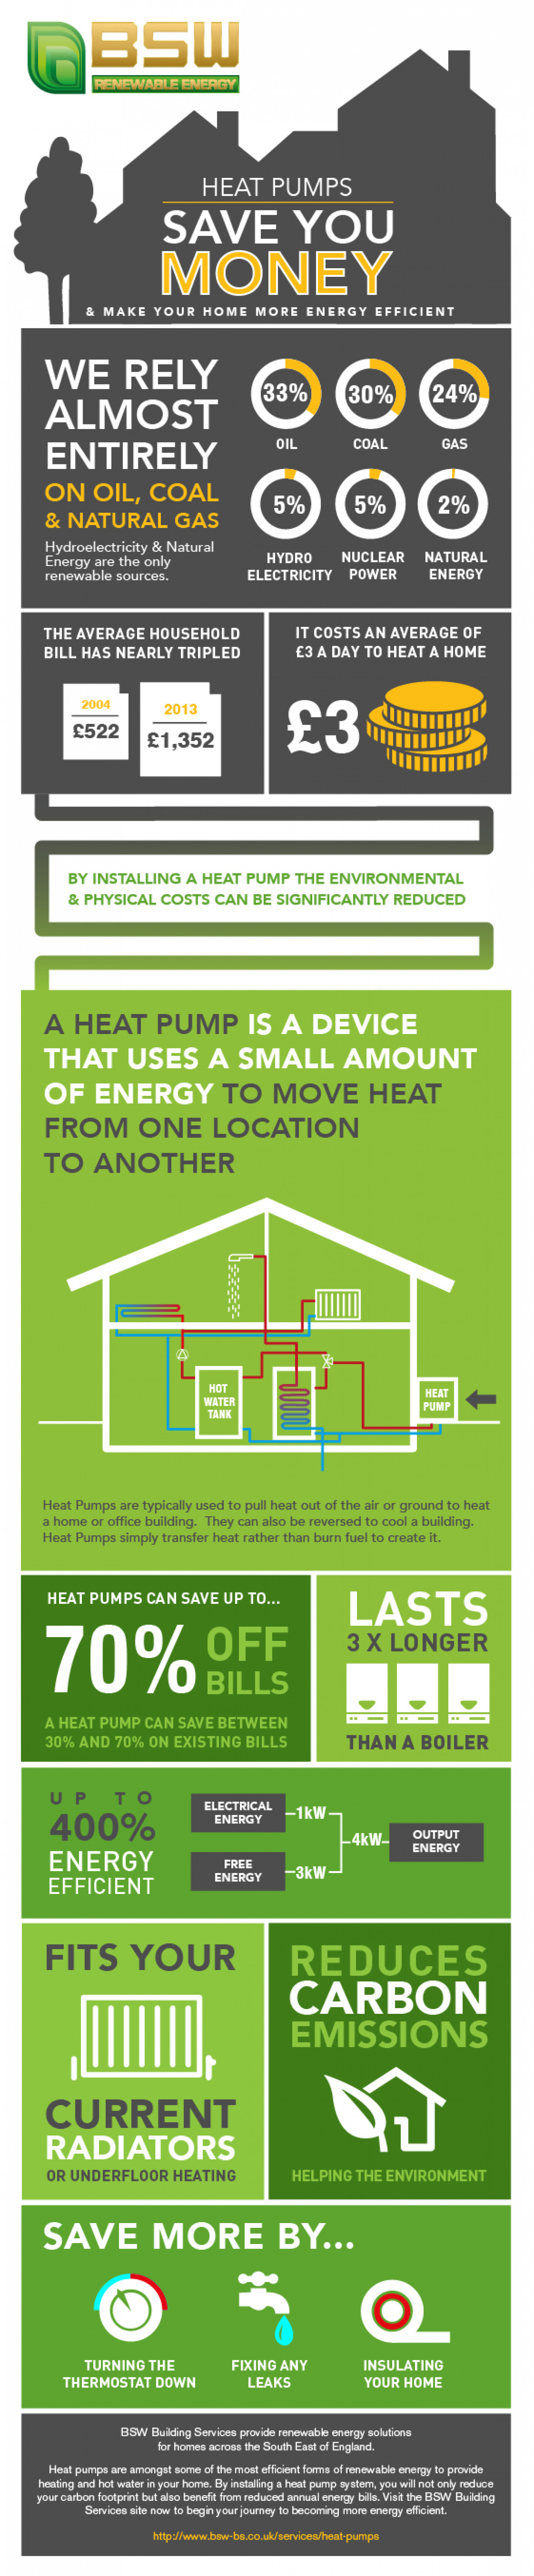 How Heat Pumps Can Save You Money Infographic